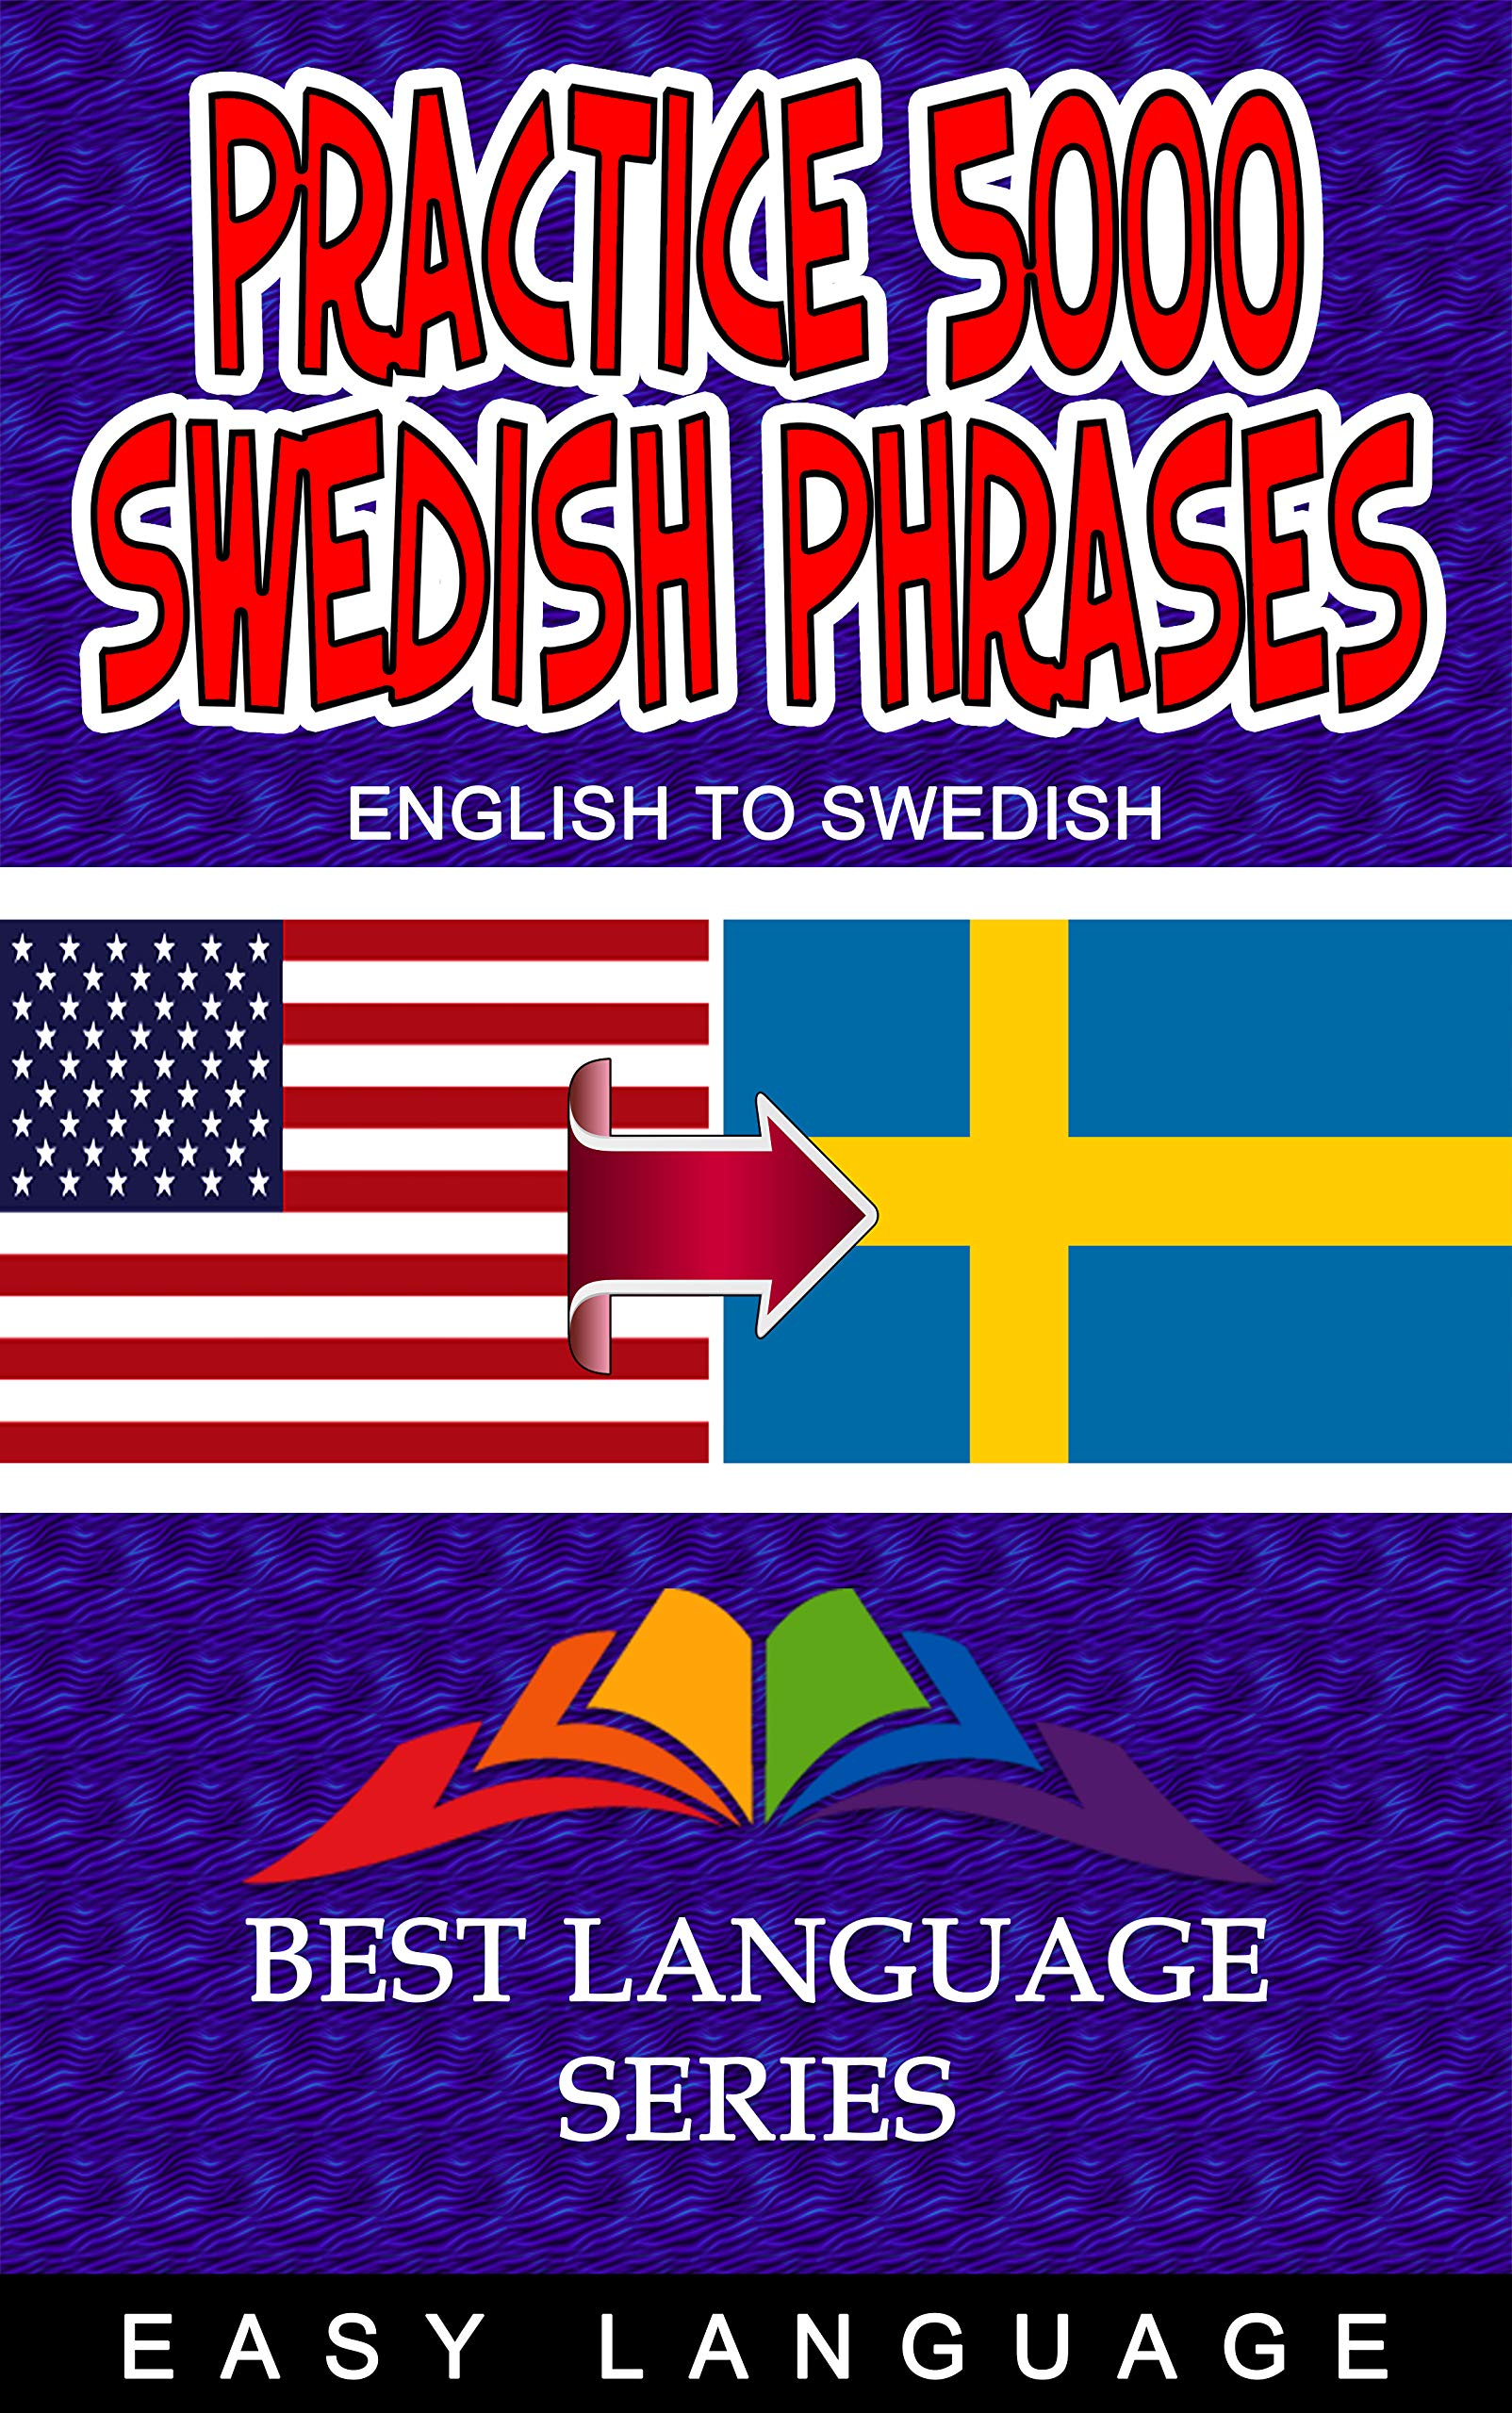 Practice 5000 Swedish Phrases  English Edition